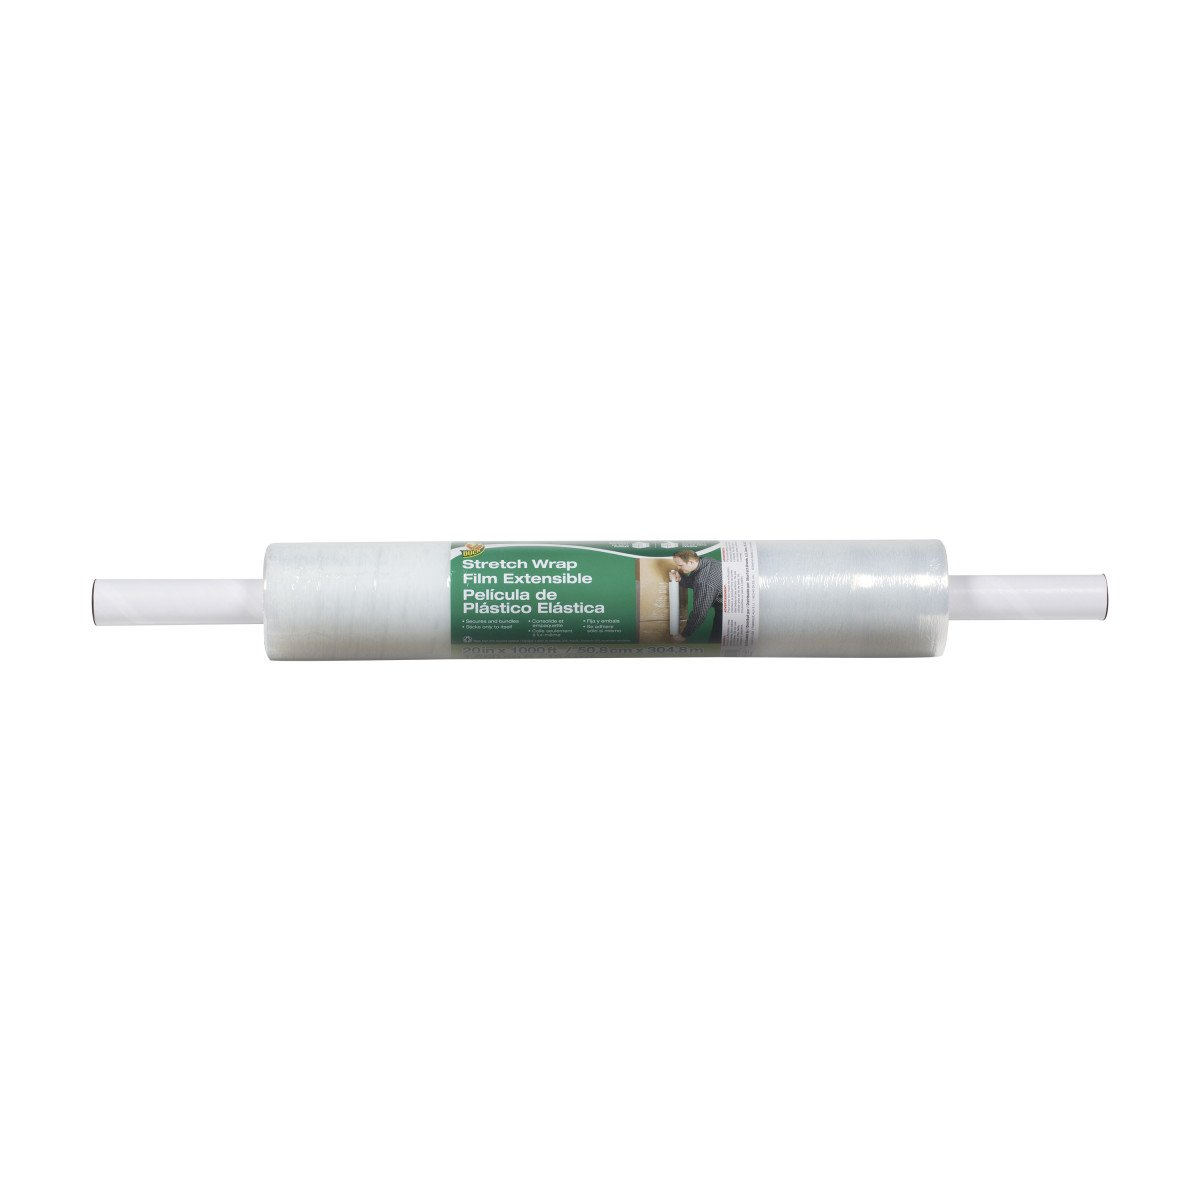 Duck Brand Stretch Wrap Roll Clear 285850 1 pack 20 inches by 1000 feet